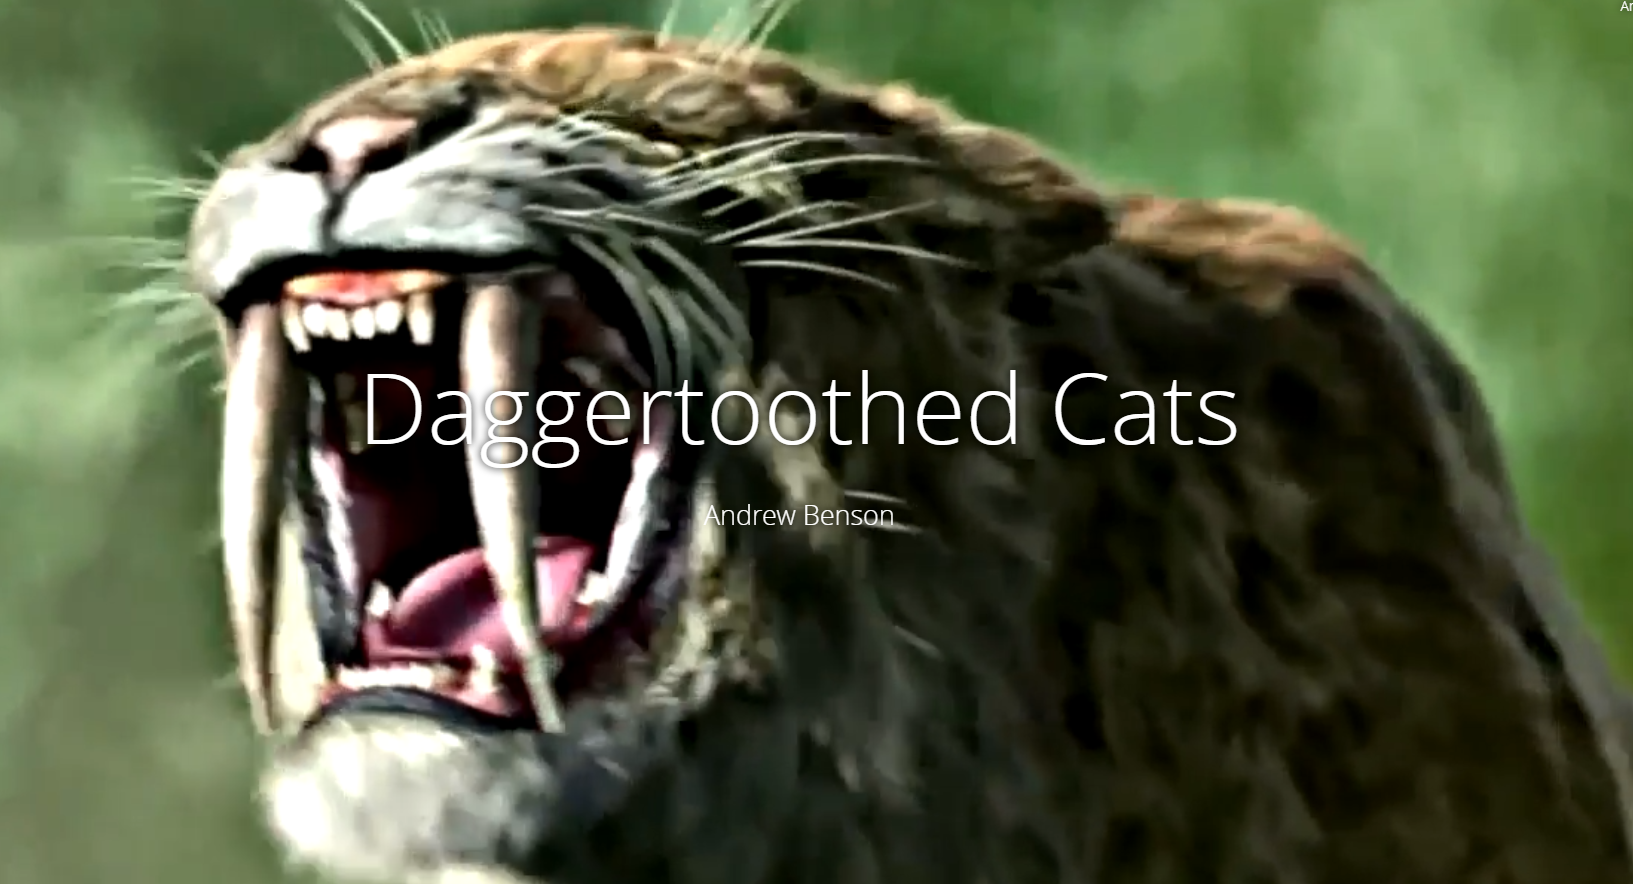 Daggertoothed Cats